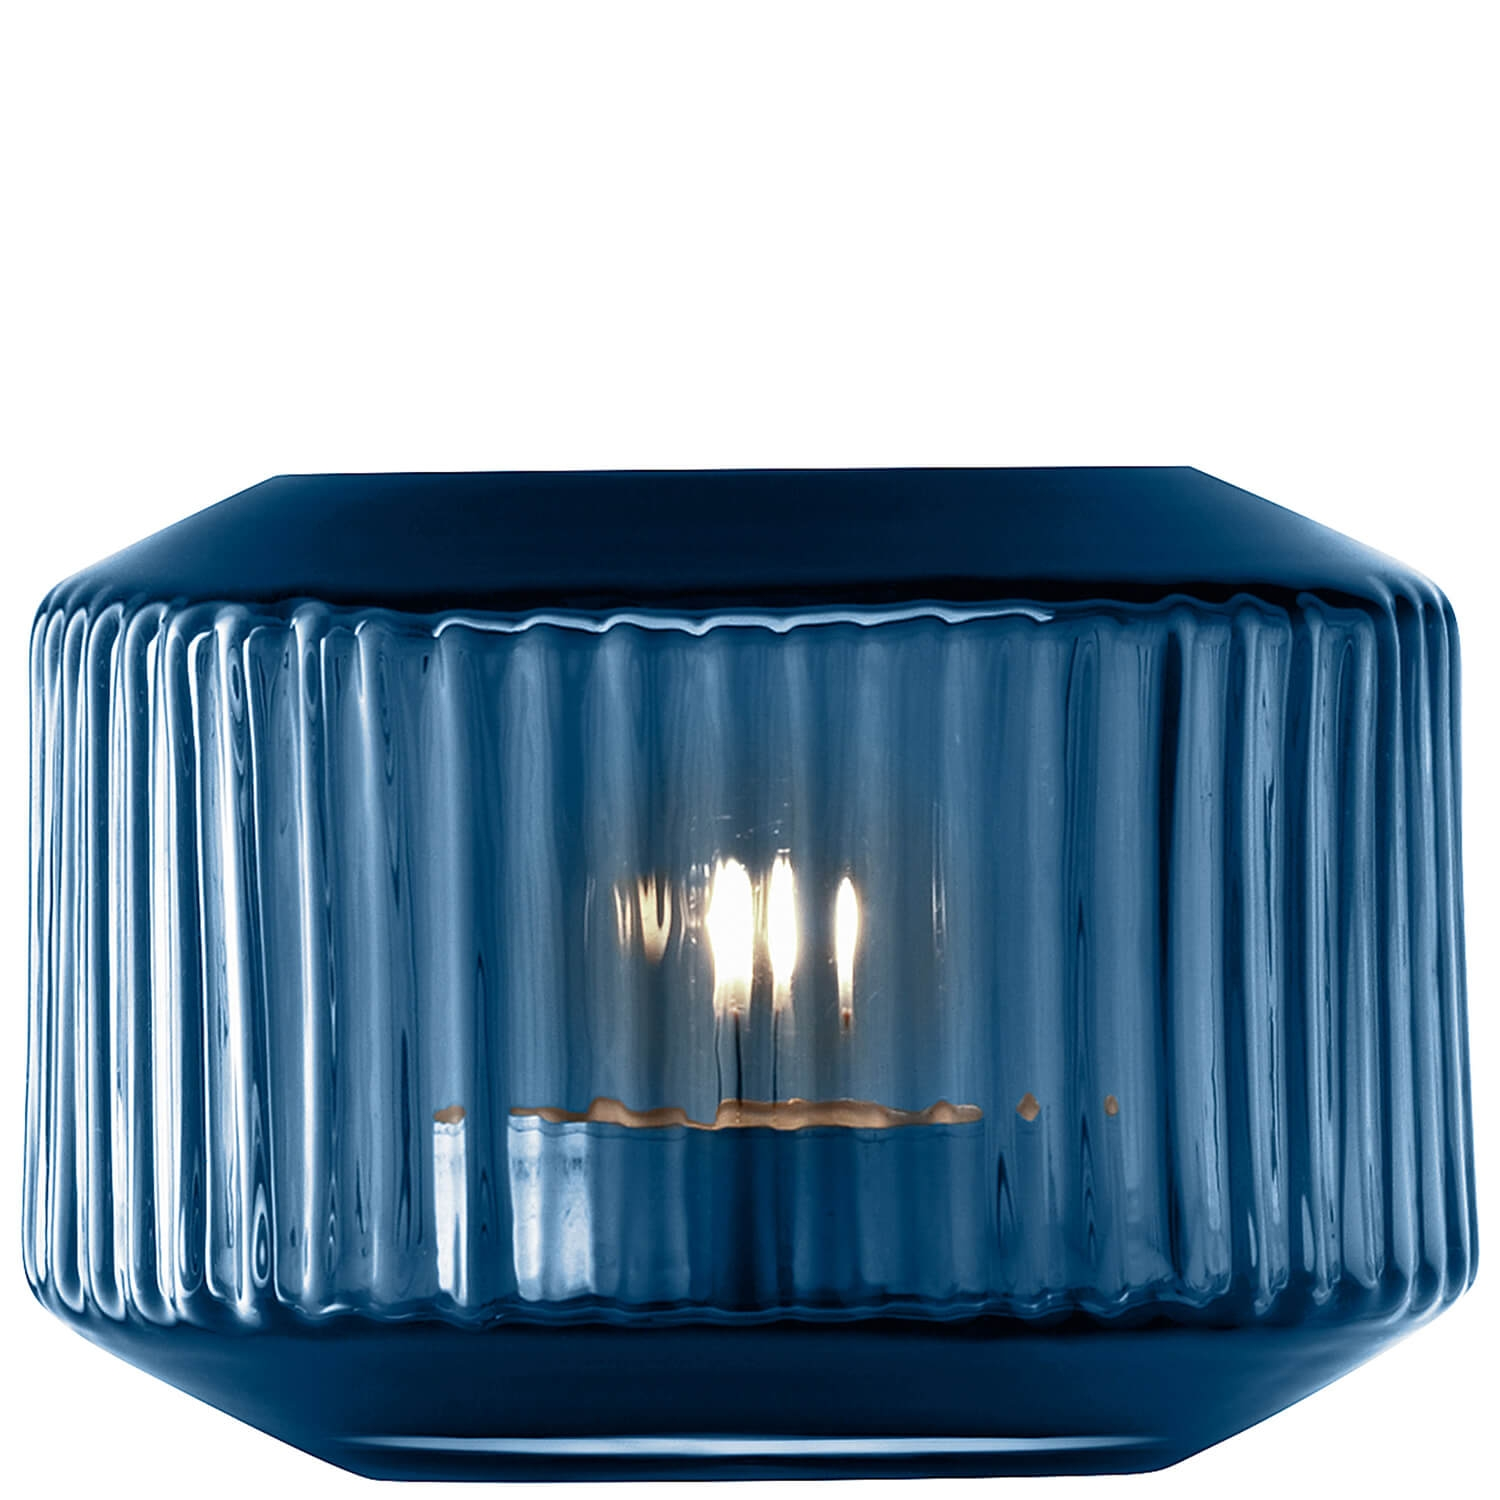 Image of Lsa Rotunda Tealight Holder, Sapphire